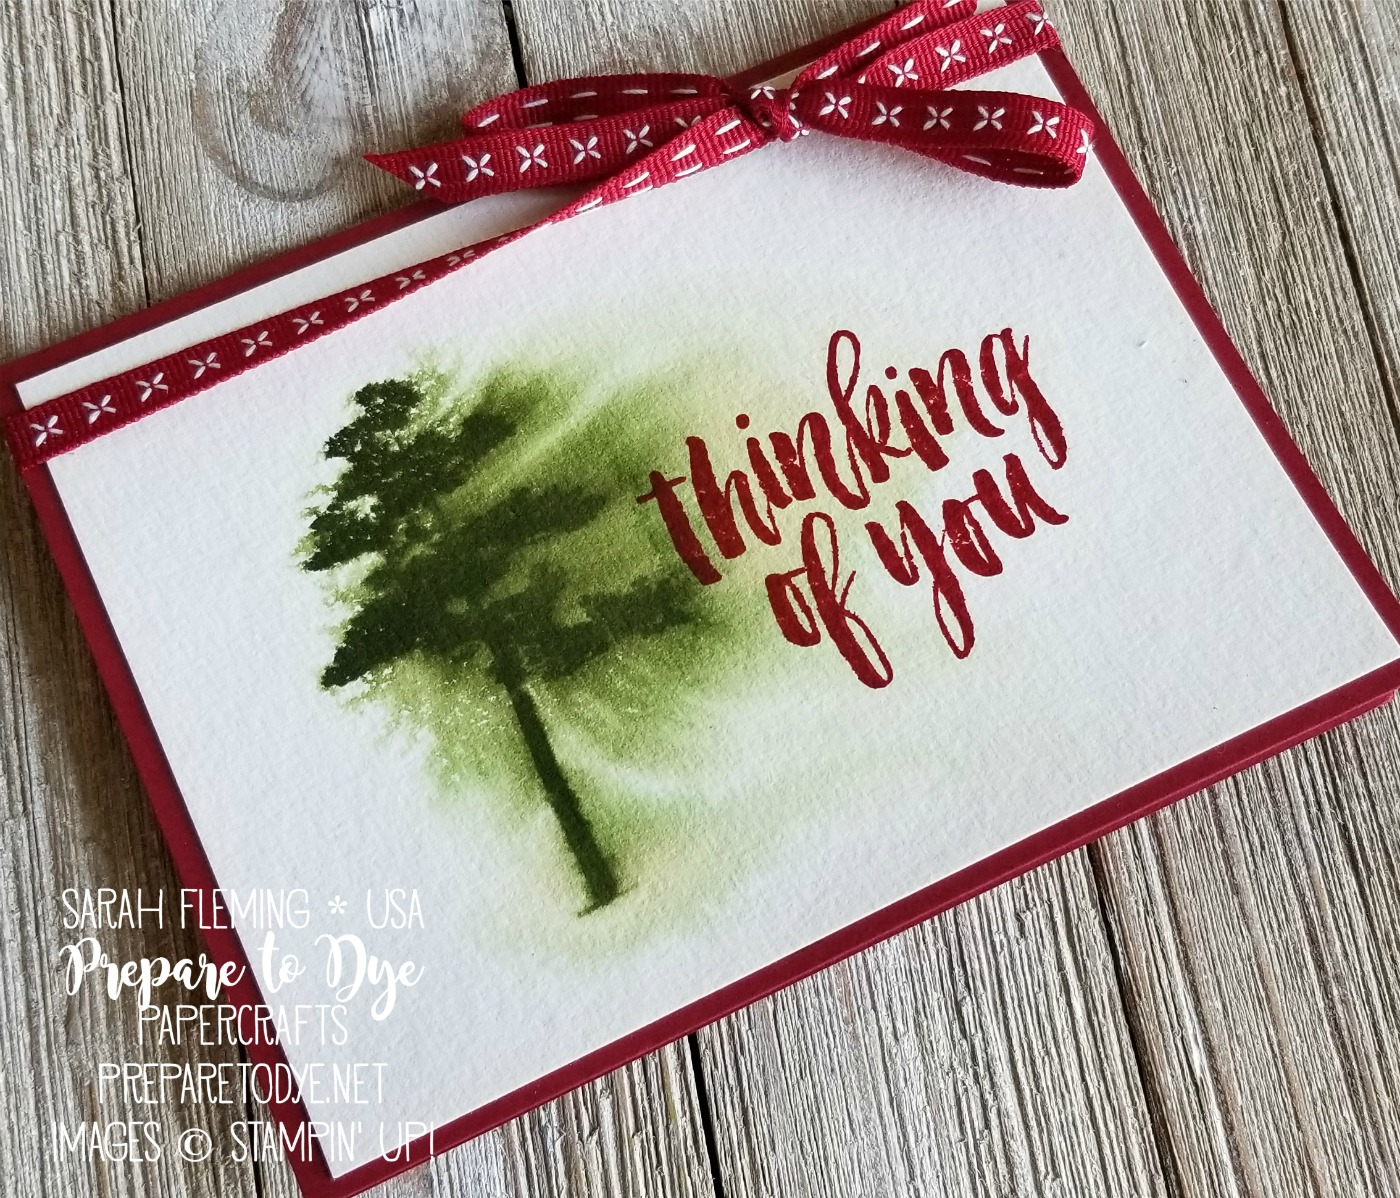 Stampin' Up! Rooted in Nature - new stamp set in 2018-2019 annual catalog with the returning Mossy Meadow color - live crafting video - Sarah Fleming - Prepare to Dye Papercrafts